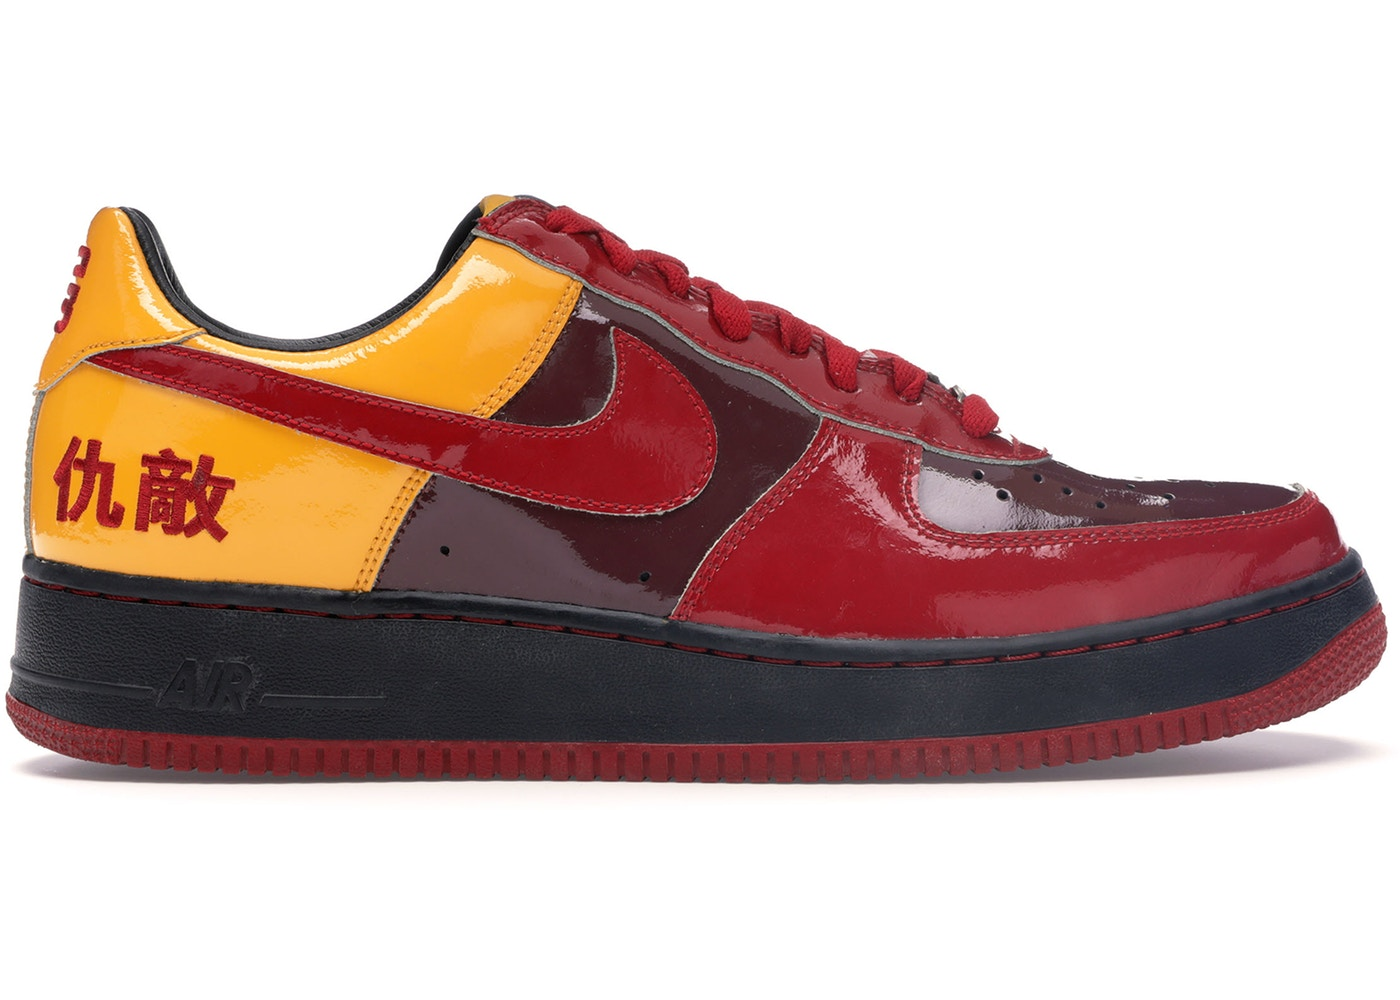 ナイキ NIKE エアー スニーカー 【 AIR FORCE 1 LOW CHAMBER OF FEAR HATER REDWOOD VARSITY REDTAXIBLACK 】 メンズ 送料無料